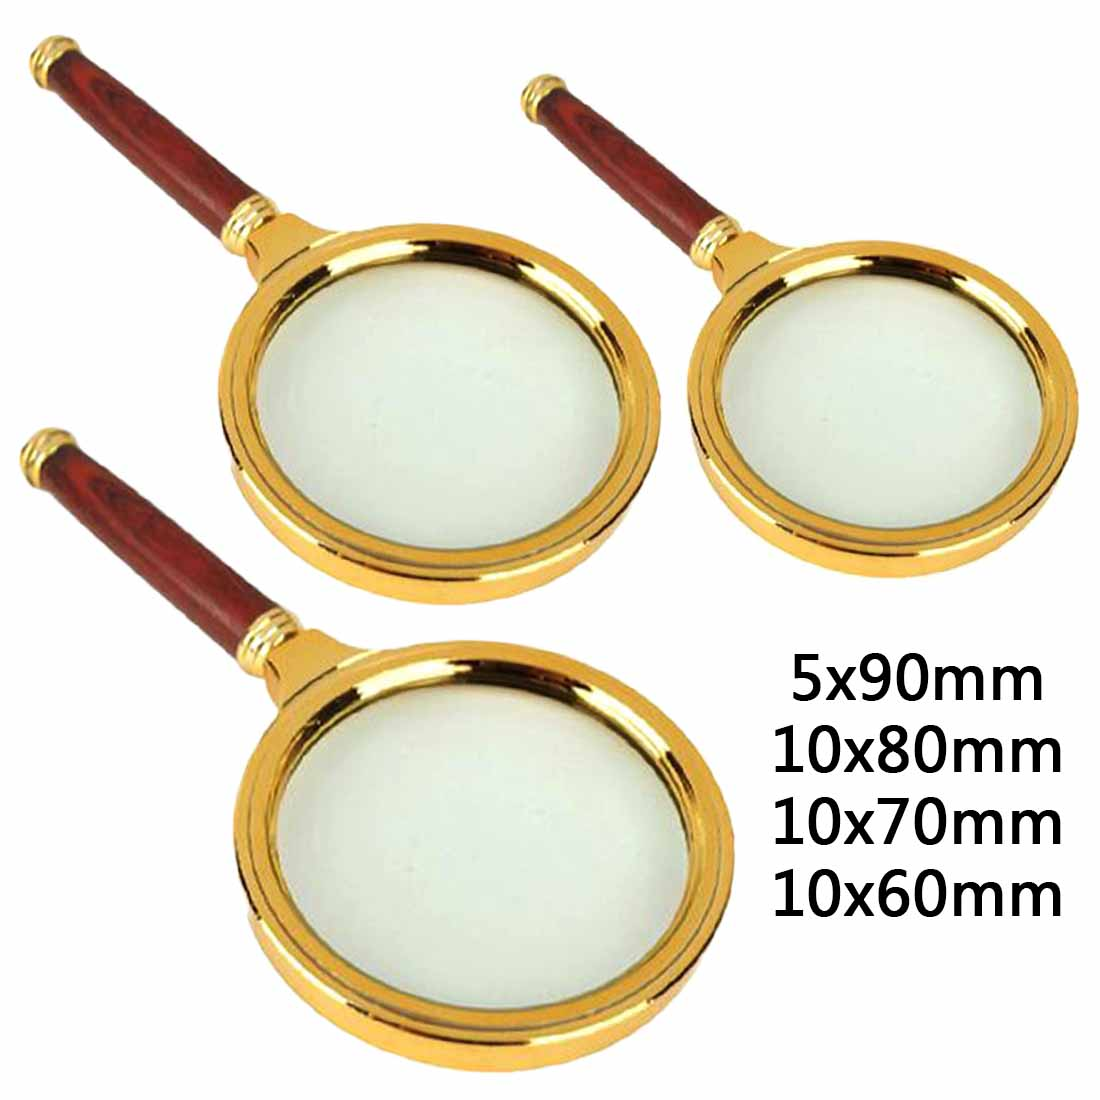 90mm/80mm/70mm/60mm Handheld 10X Portable Magnifier Magnifying Glass Loupe Reading Jewelry Eye Loupe Magnifier Repair Tool